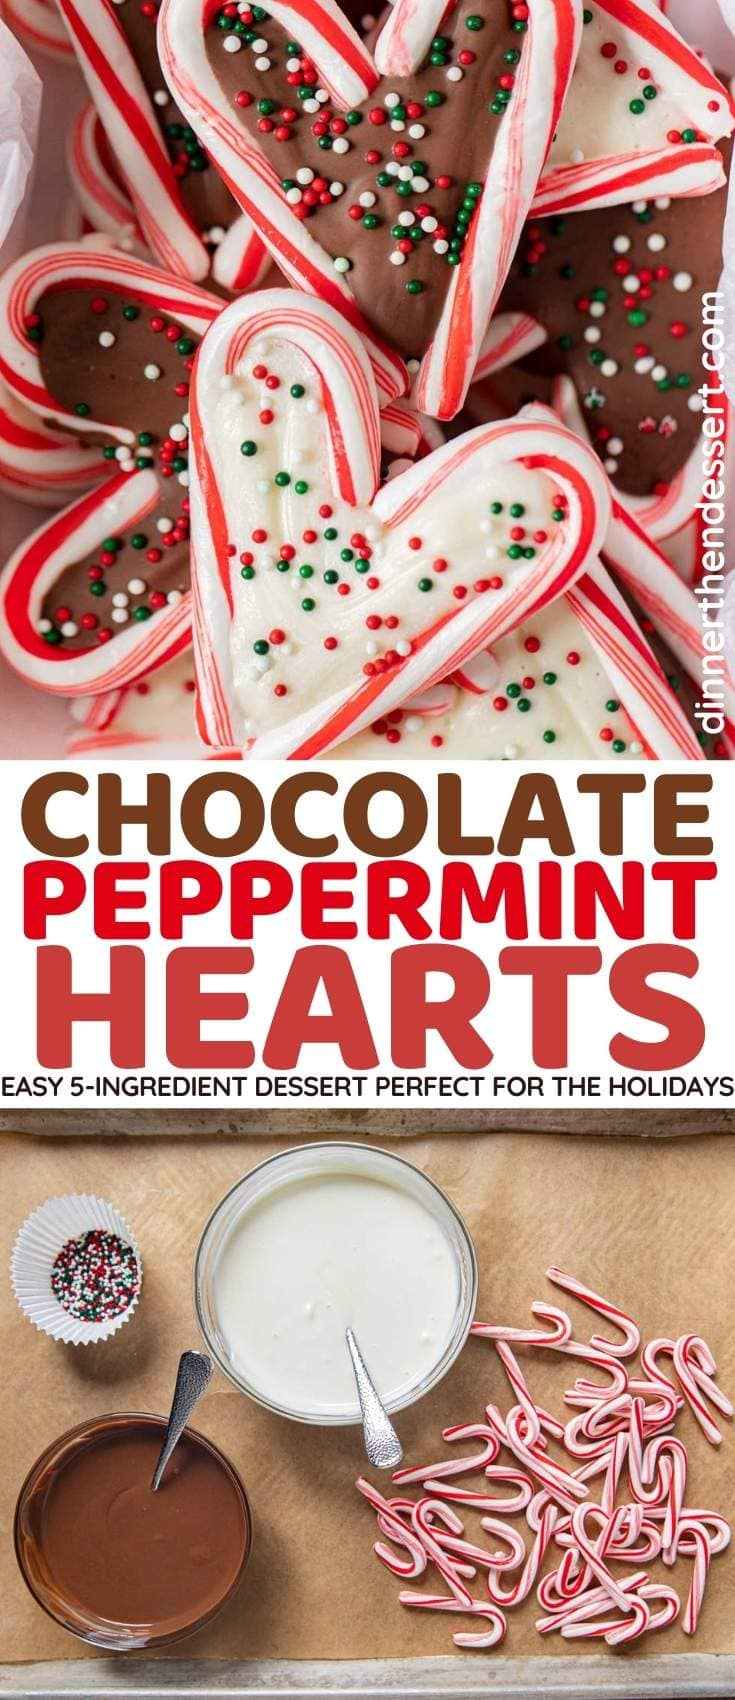 Chocolate Peppermint Hearts collage